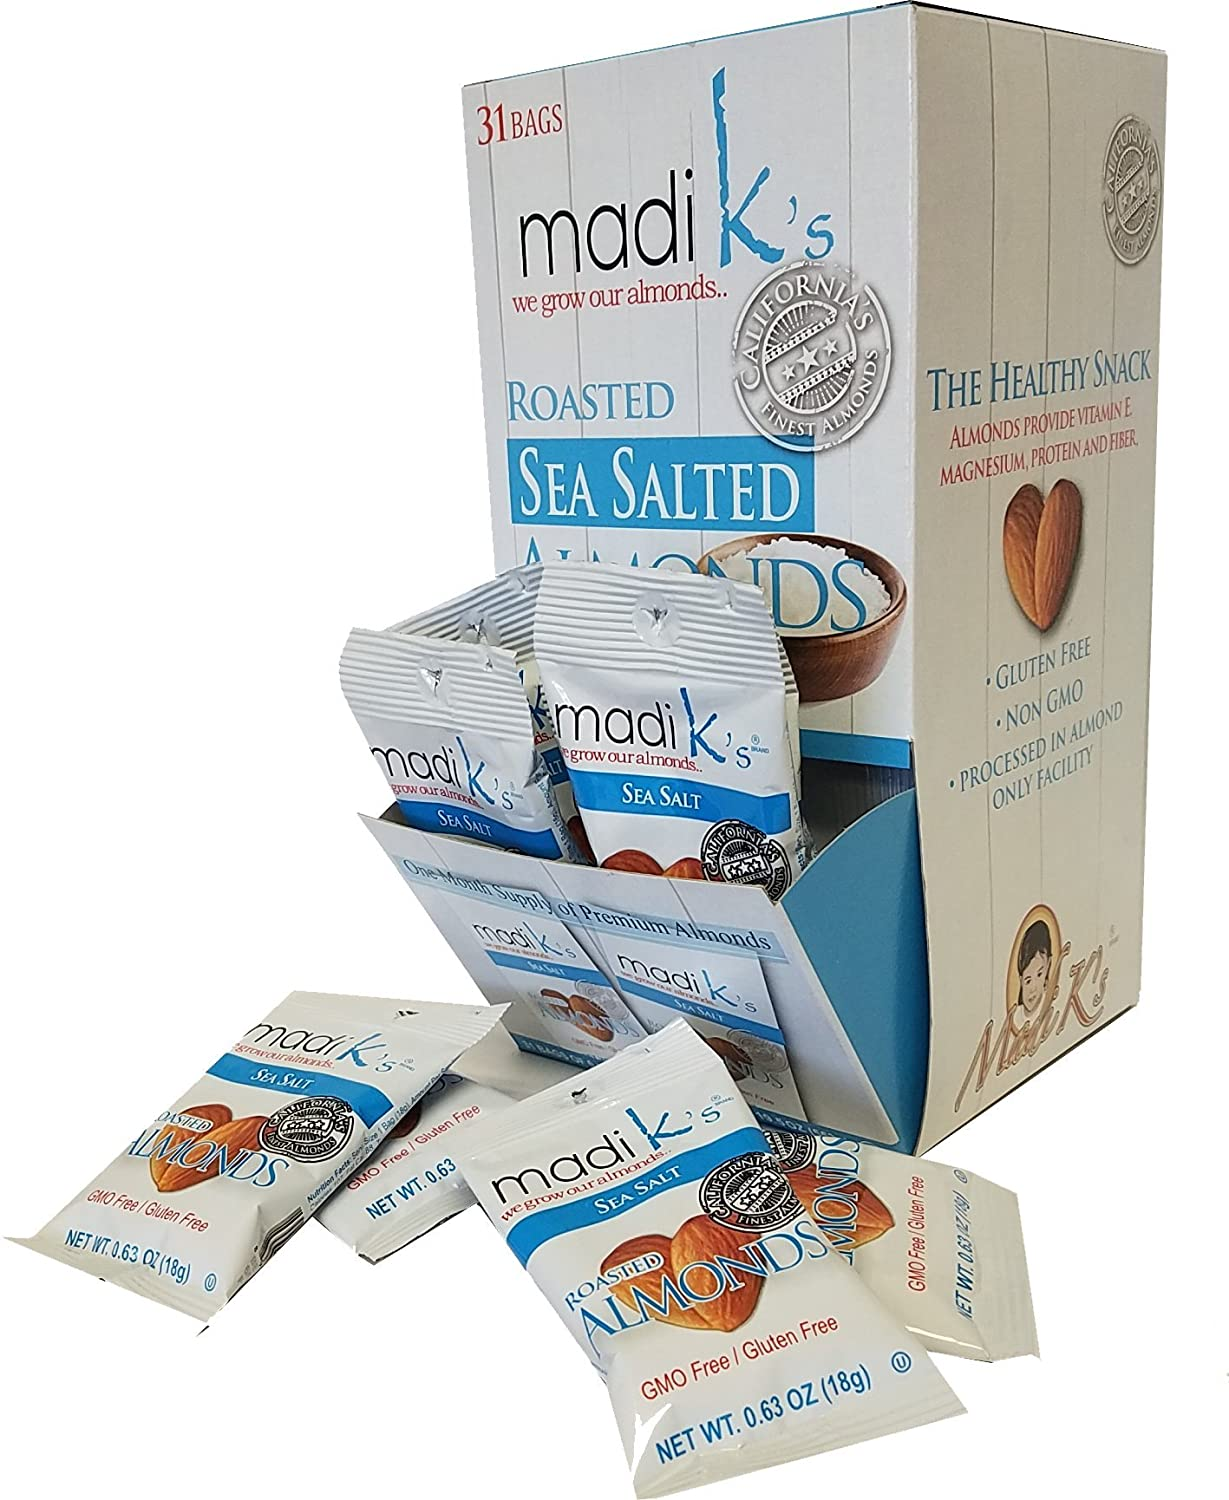 Madi K's Almonds Sea security Salt of Pack Super sale period limited 31 Count